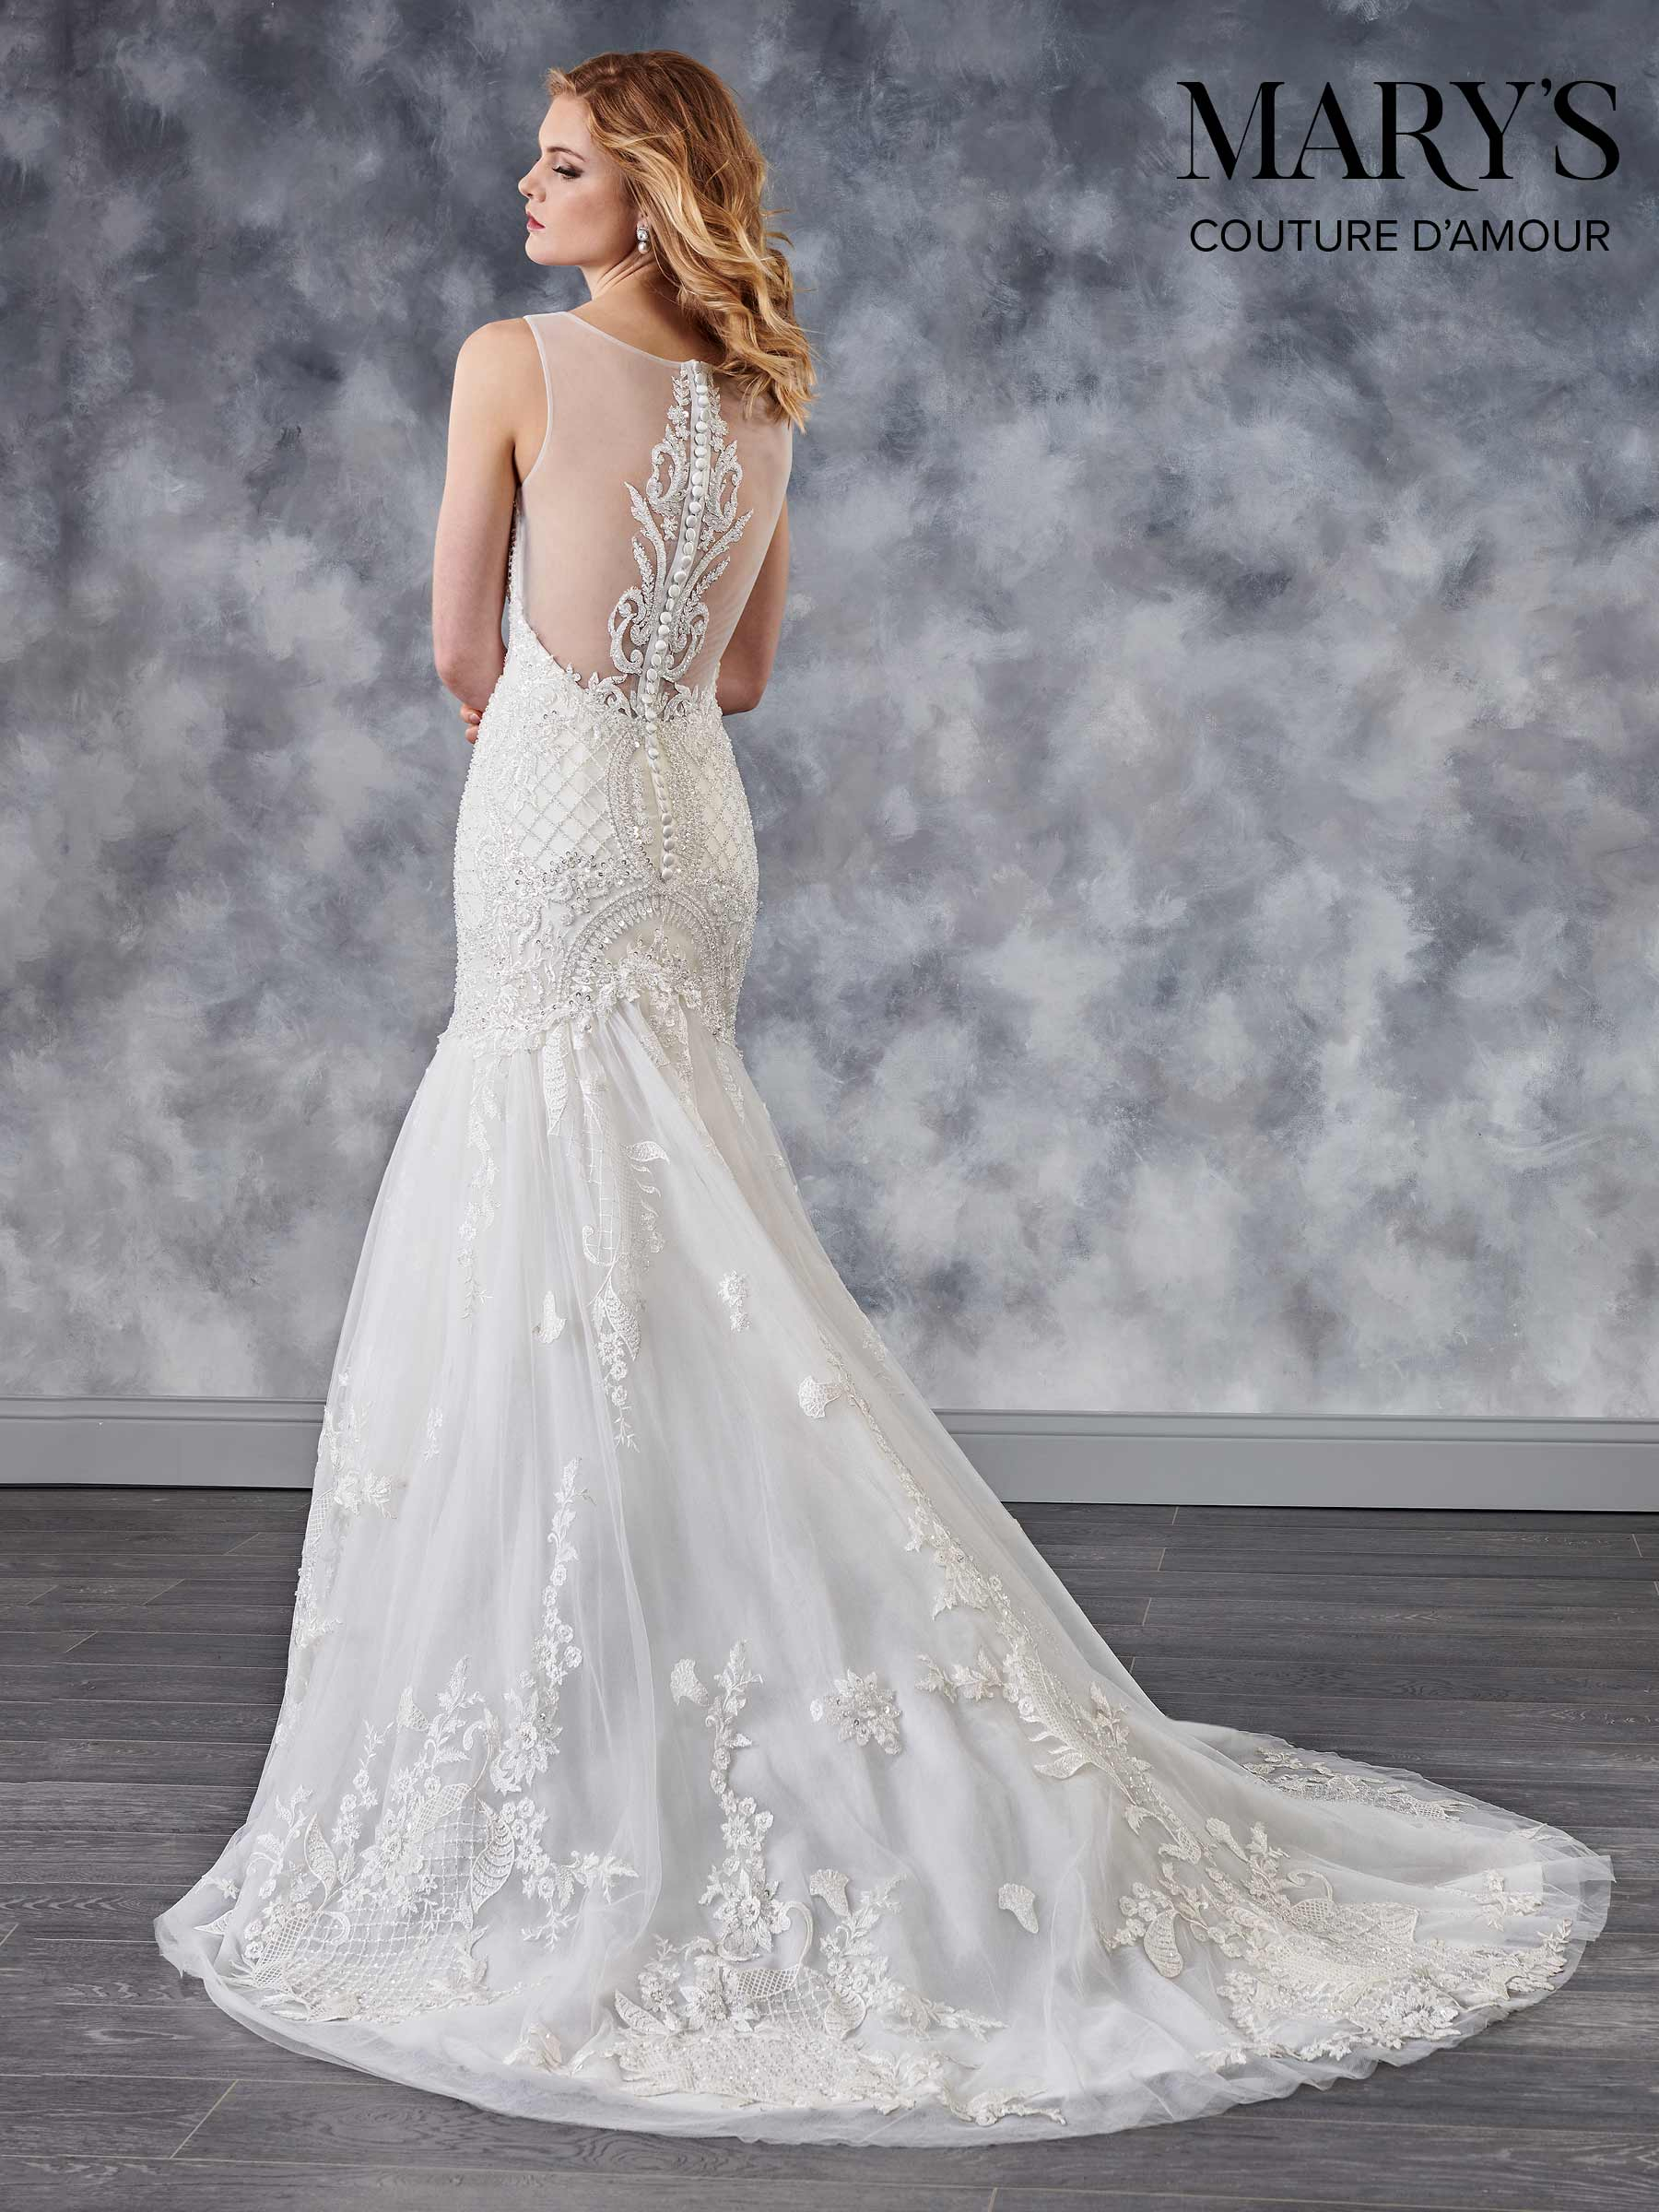 Couture Damour Bridal Dresses | Couture d'Amour | Style - MB4025